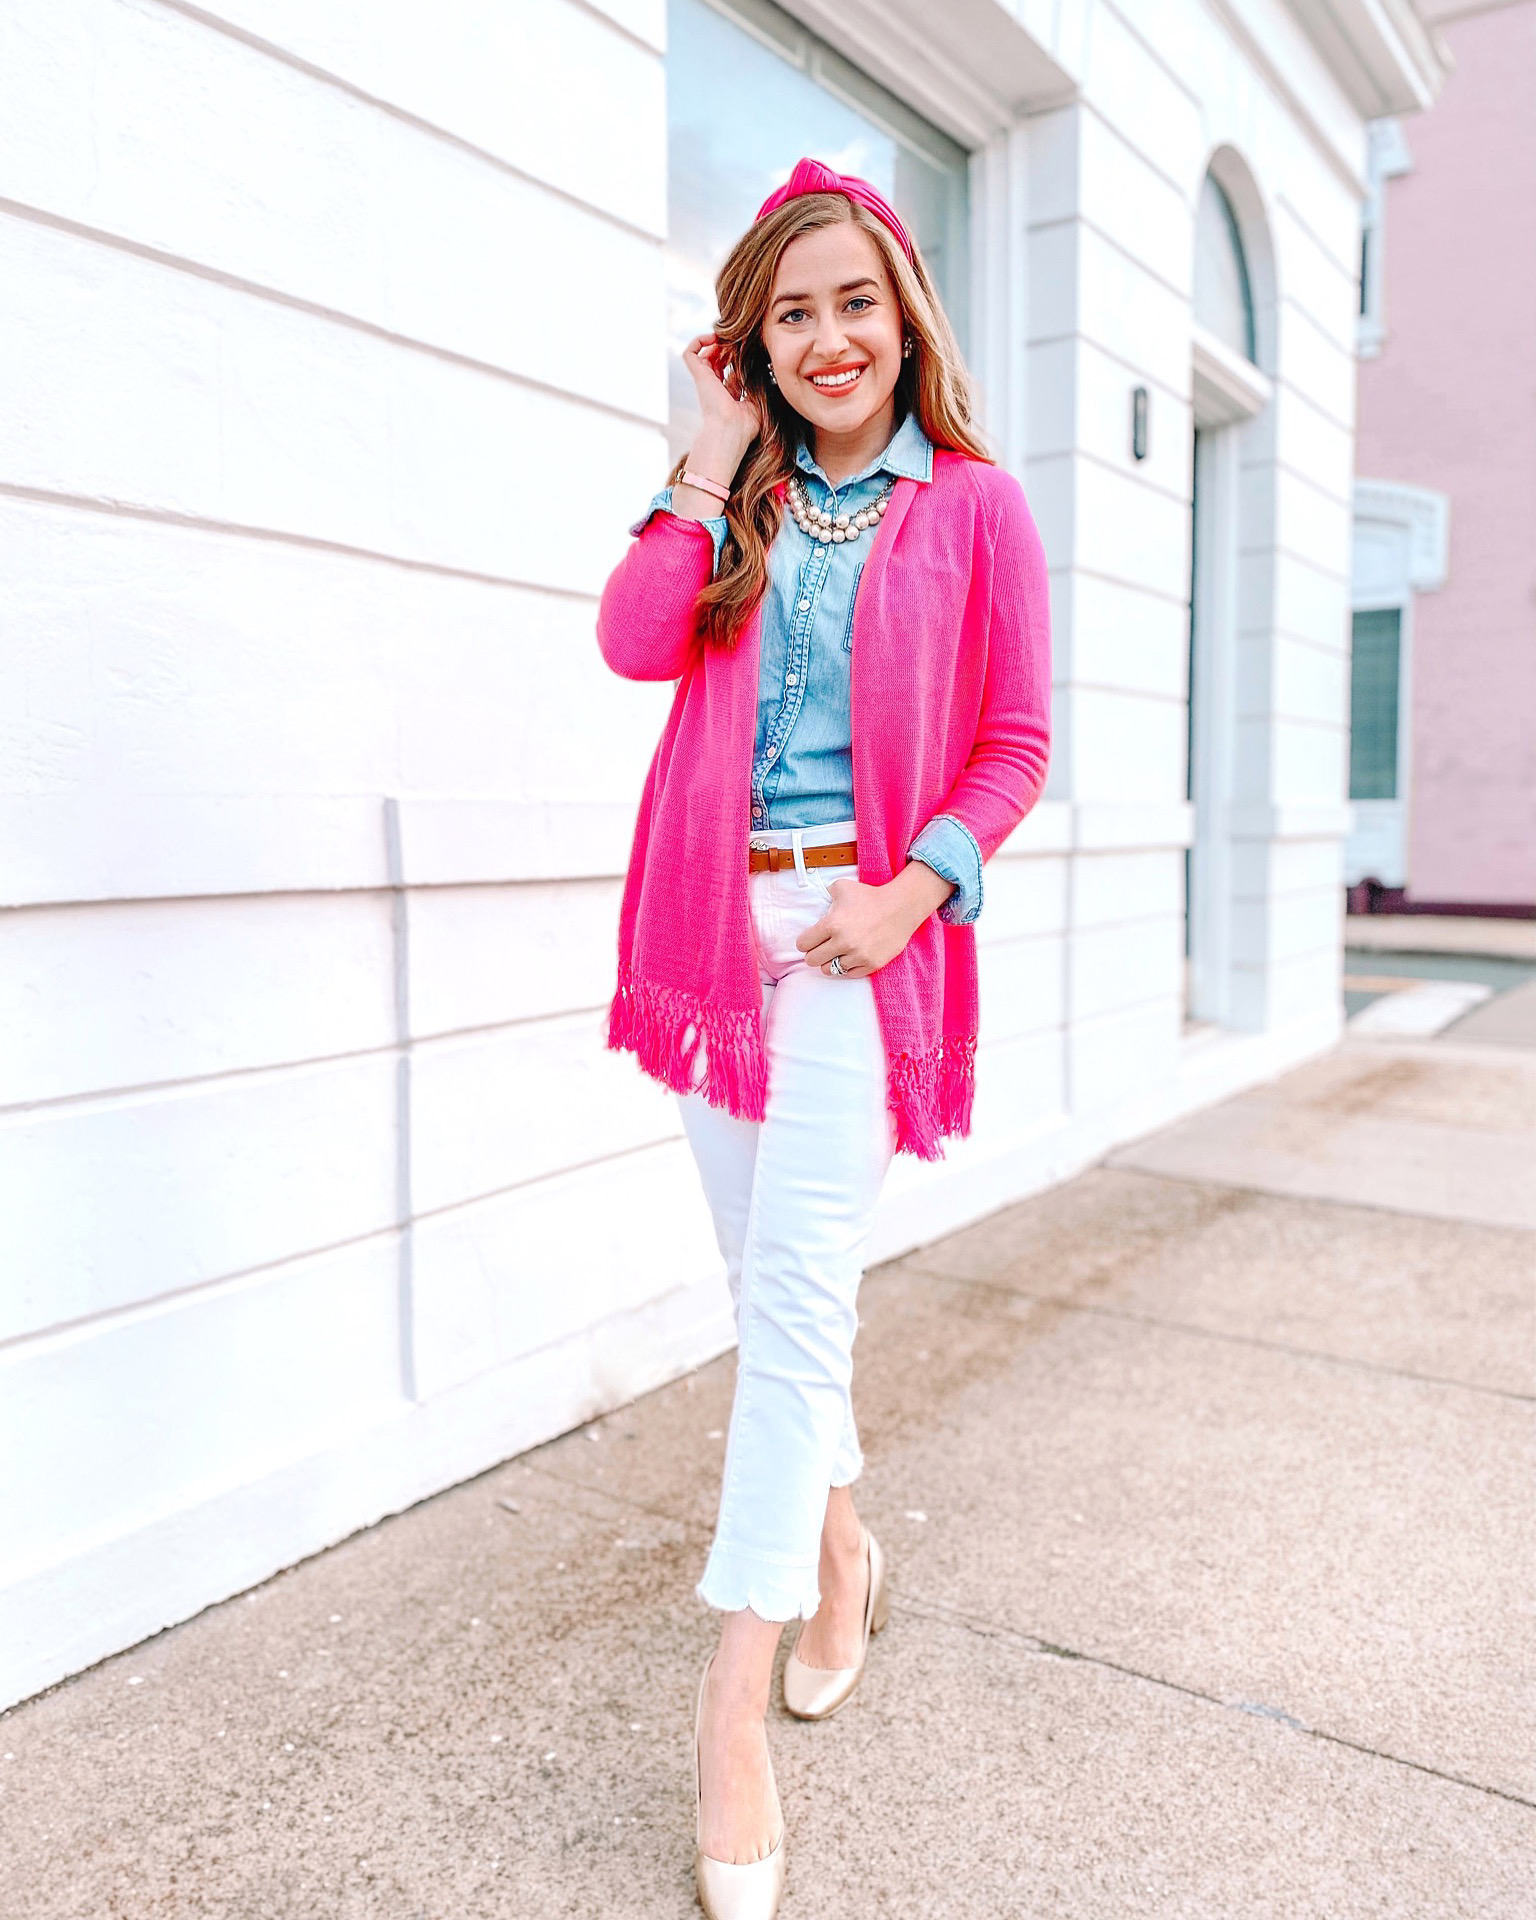 Preppy pink cardigan outfit for women. Winter fashion. Spring fashion.